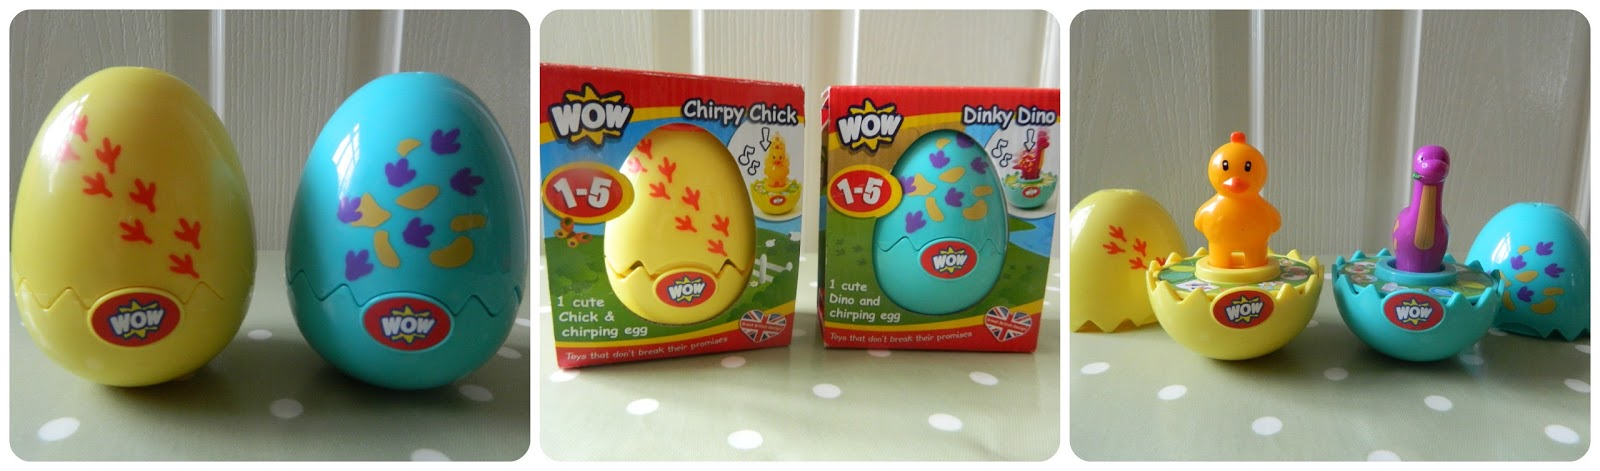 WOW Toys Easter Eggs My Dinky Dino My Tweety Chick